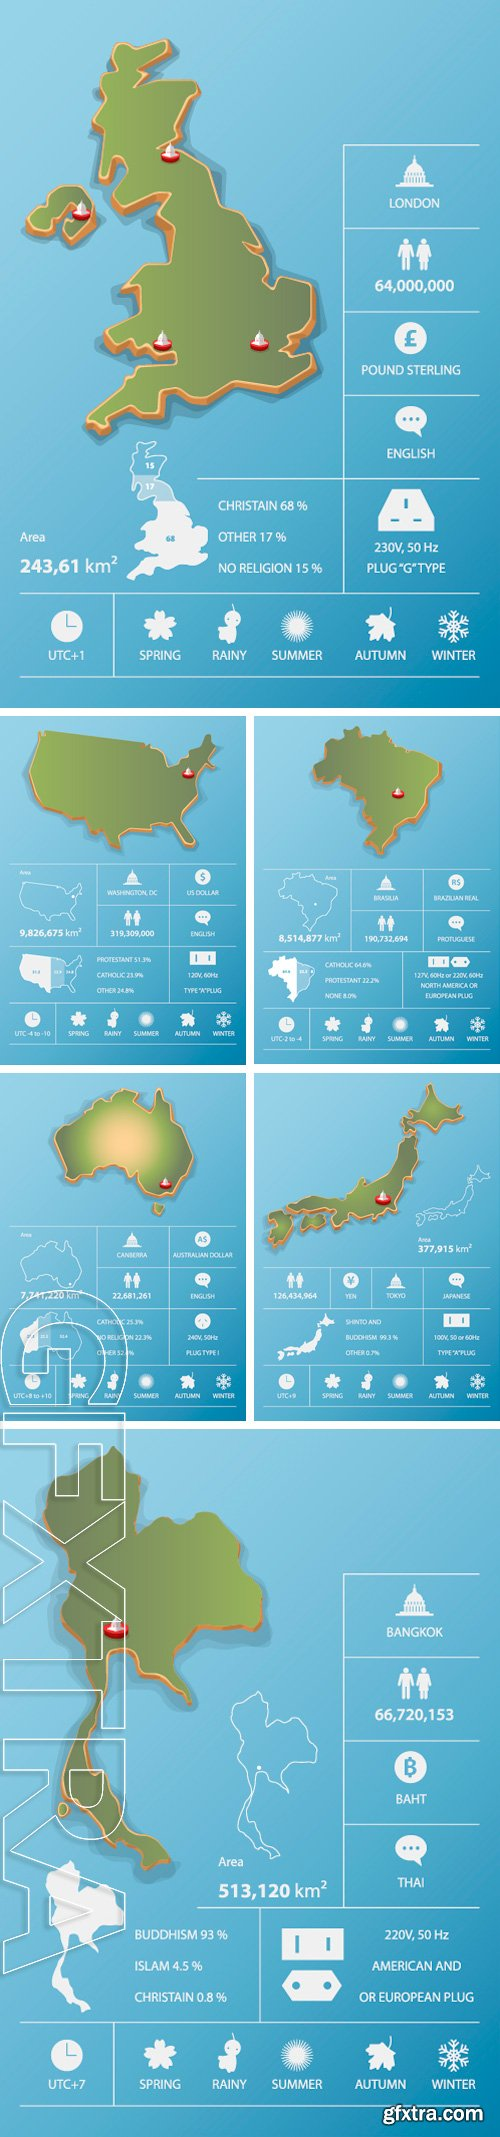 Maps page 4 vector photoshop psdafter effects tutorials stock vectors map and travel infographic template design national data icons and element gumiabroncs Images